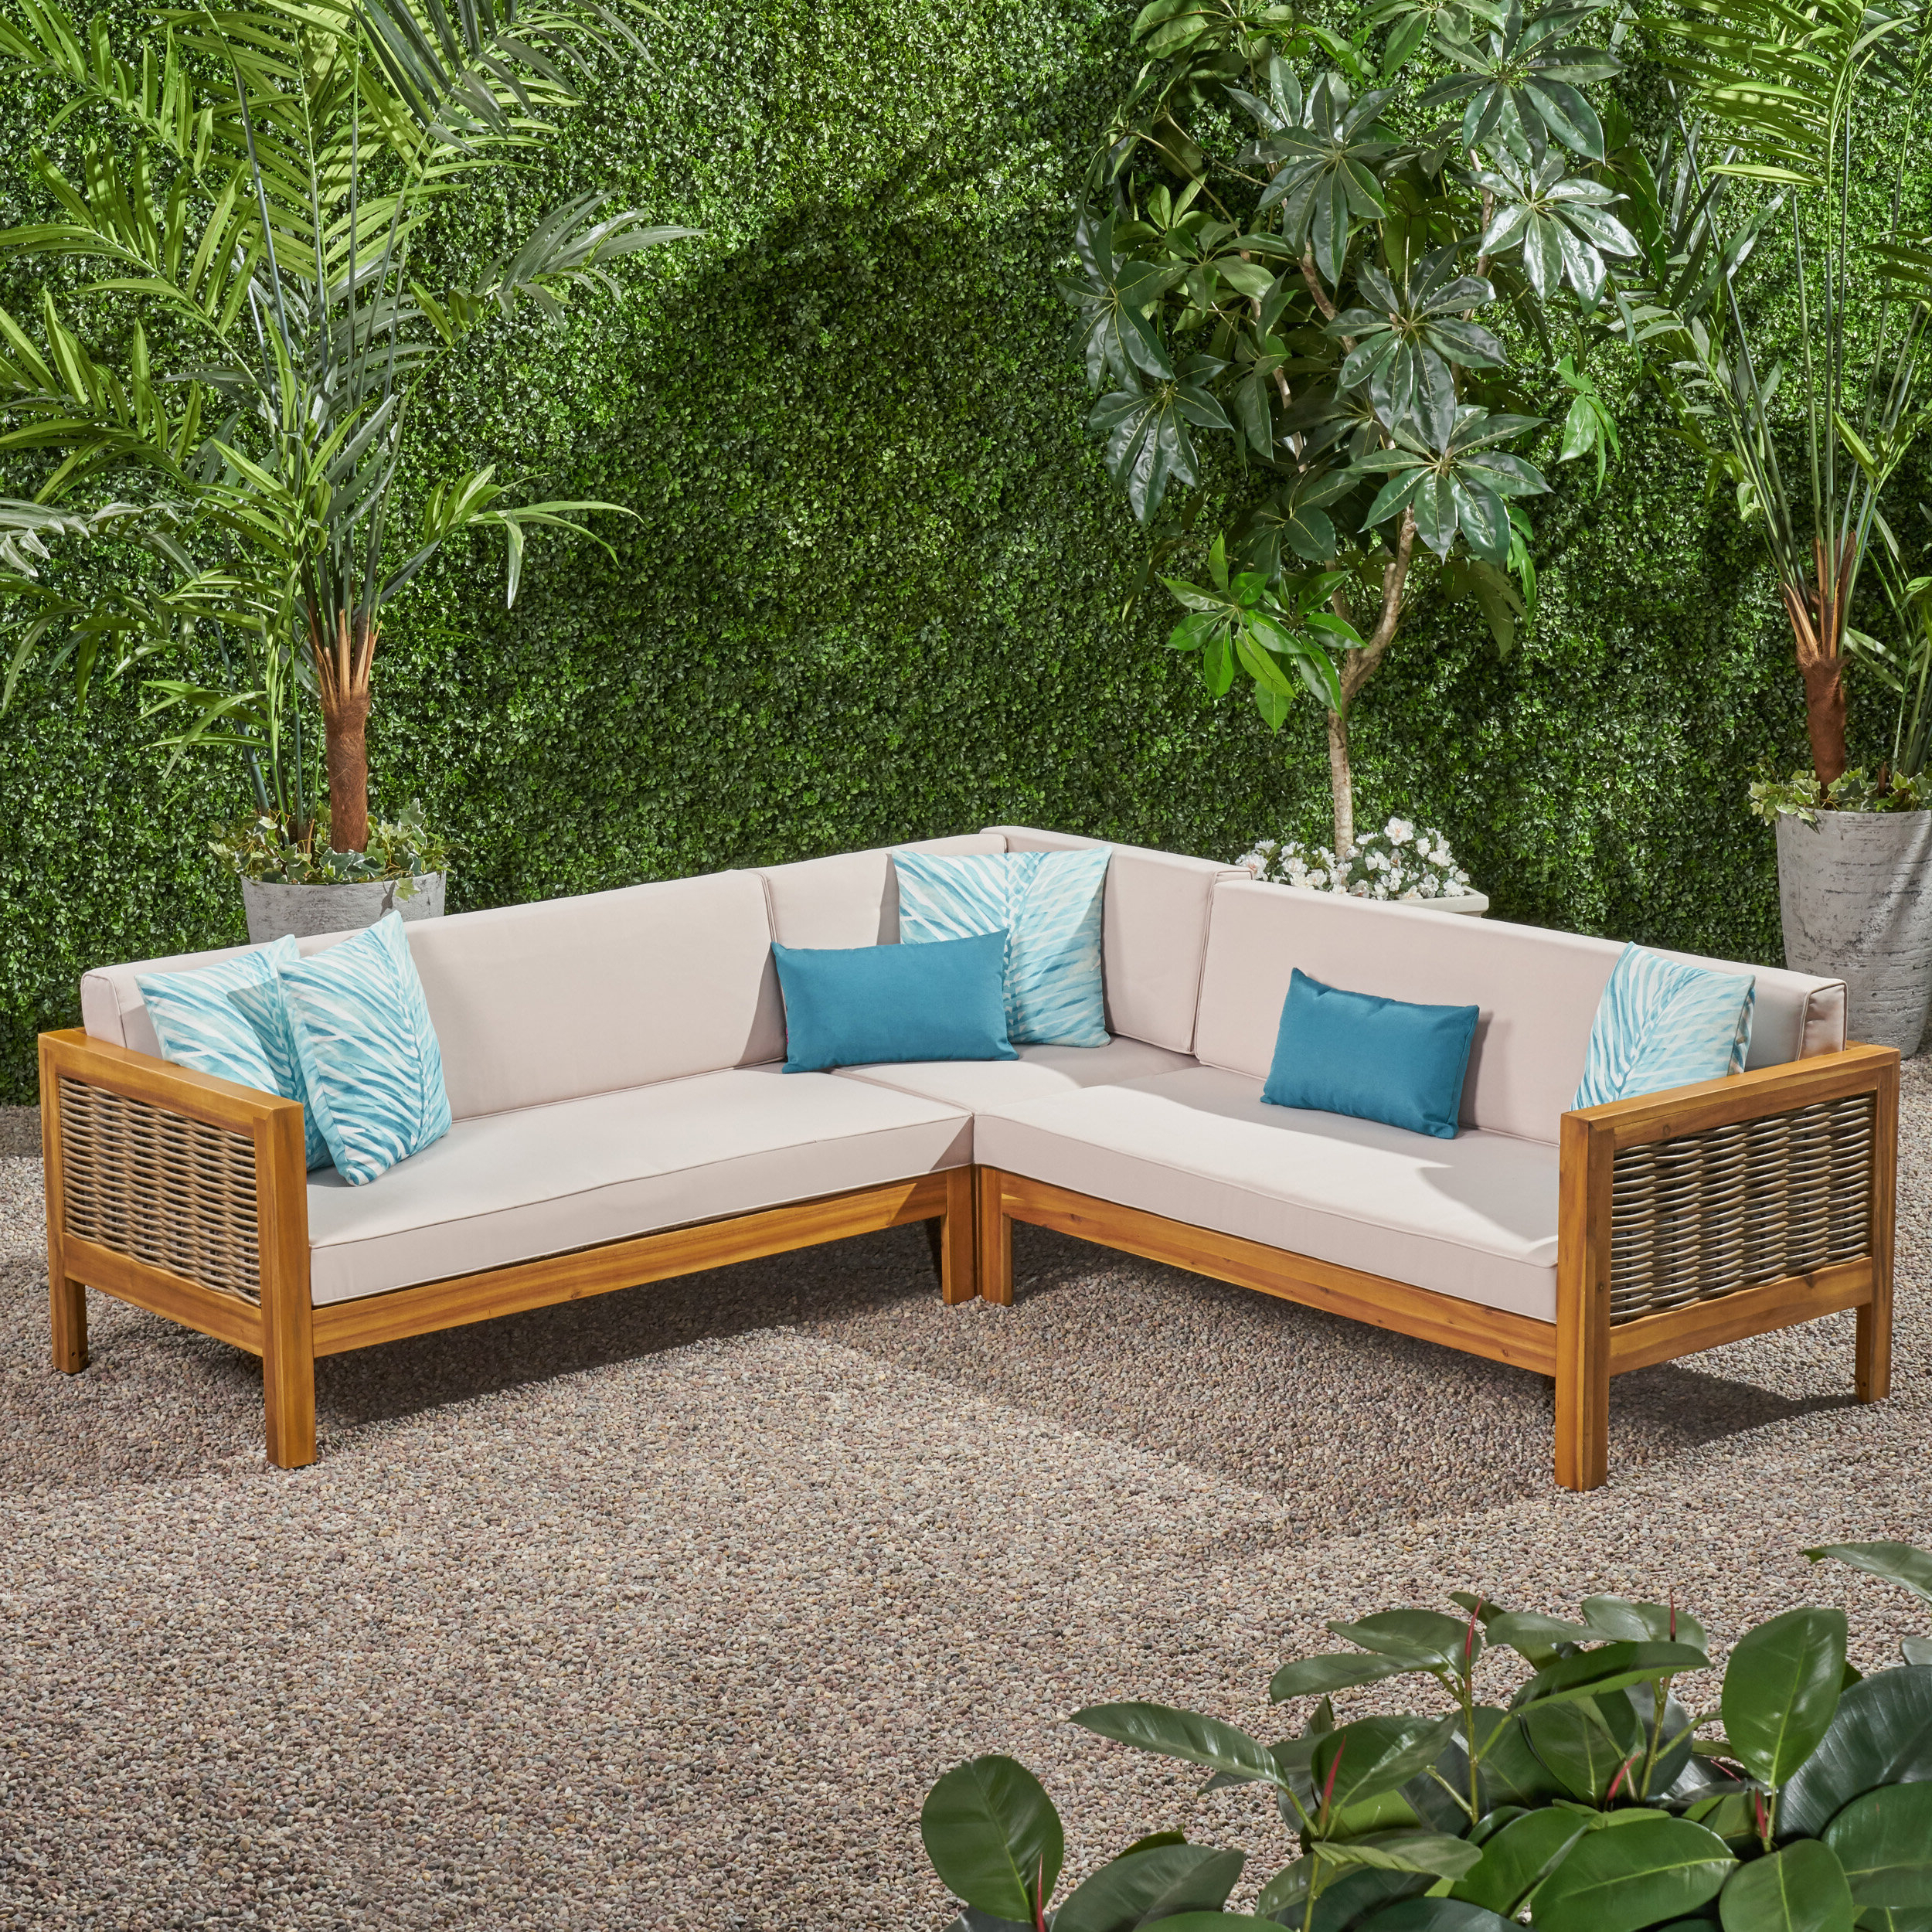 Antonia Teak Patio Sectionals With Cushions In Well Known Kennison Patio Sectional With Cushions (View 4 of 25)